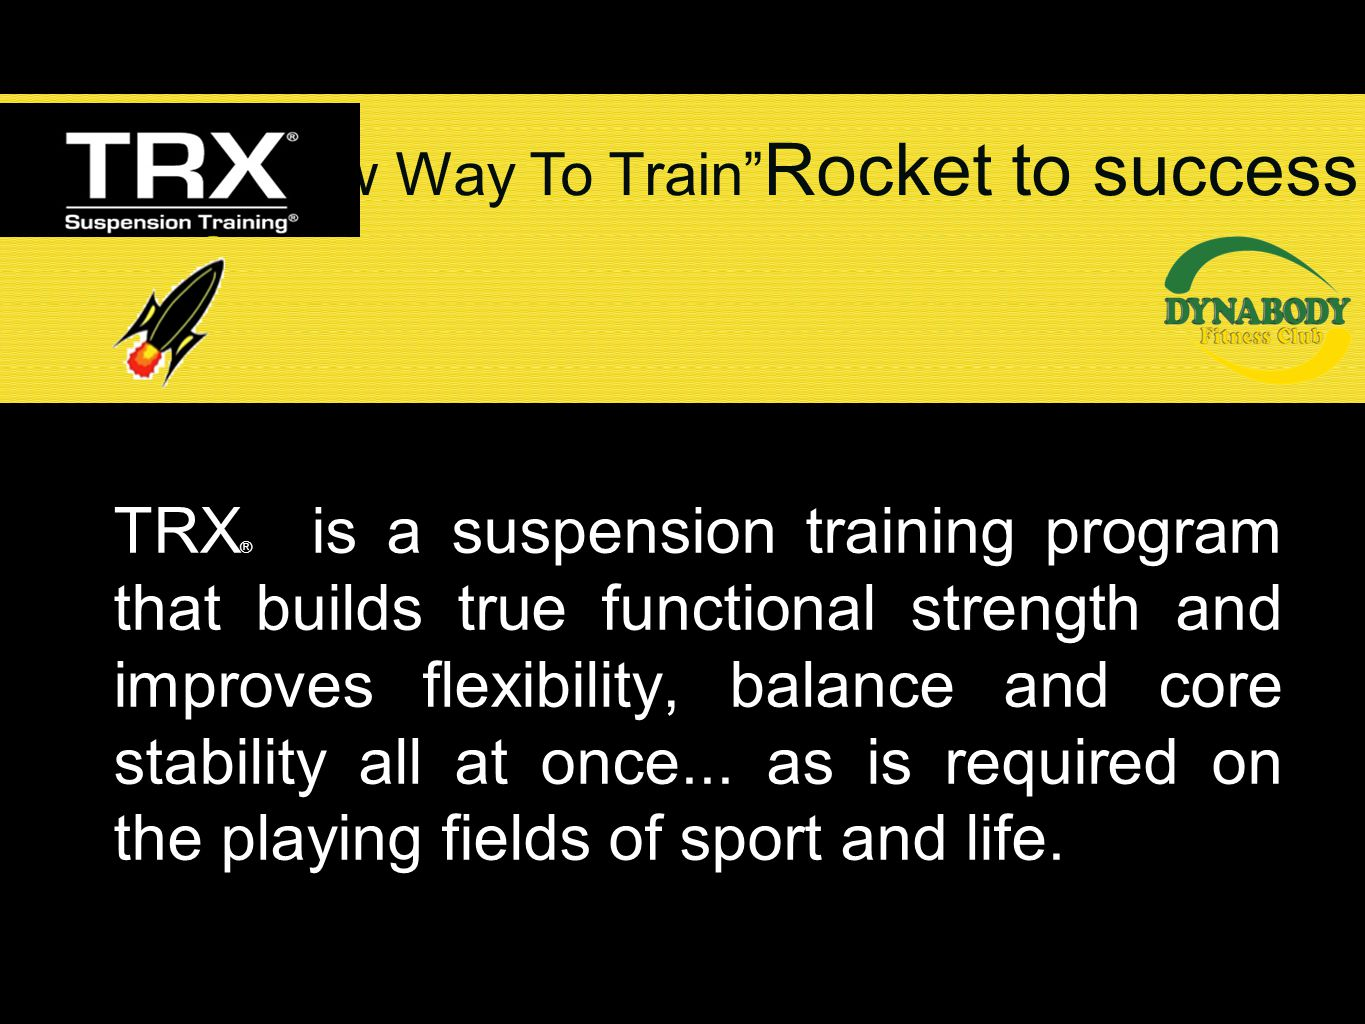 TRX ® is a suspension training program that builds true functional strength and improves flexibility, balance and core stability all at once... as is